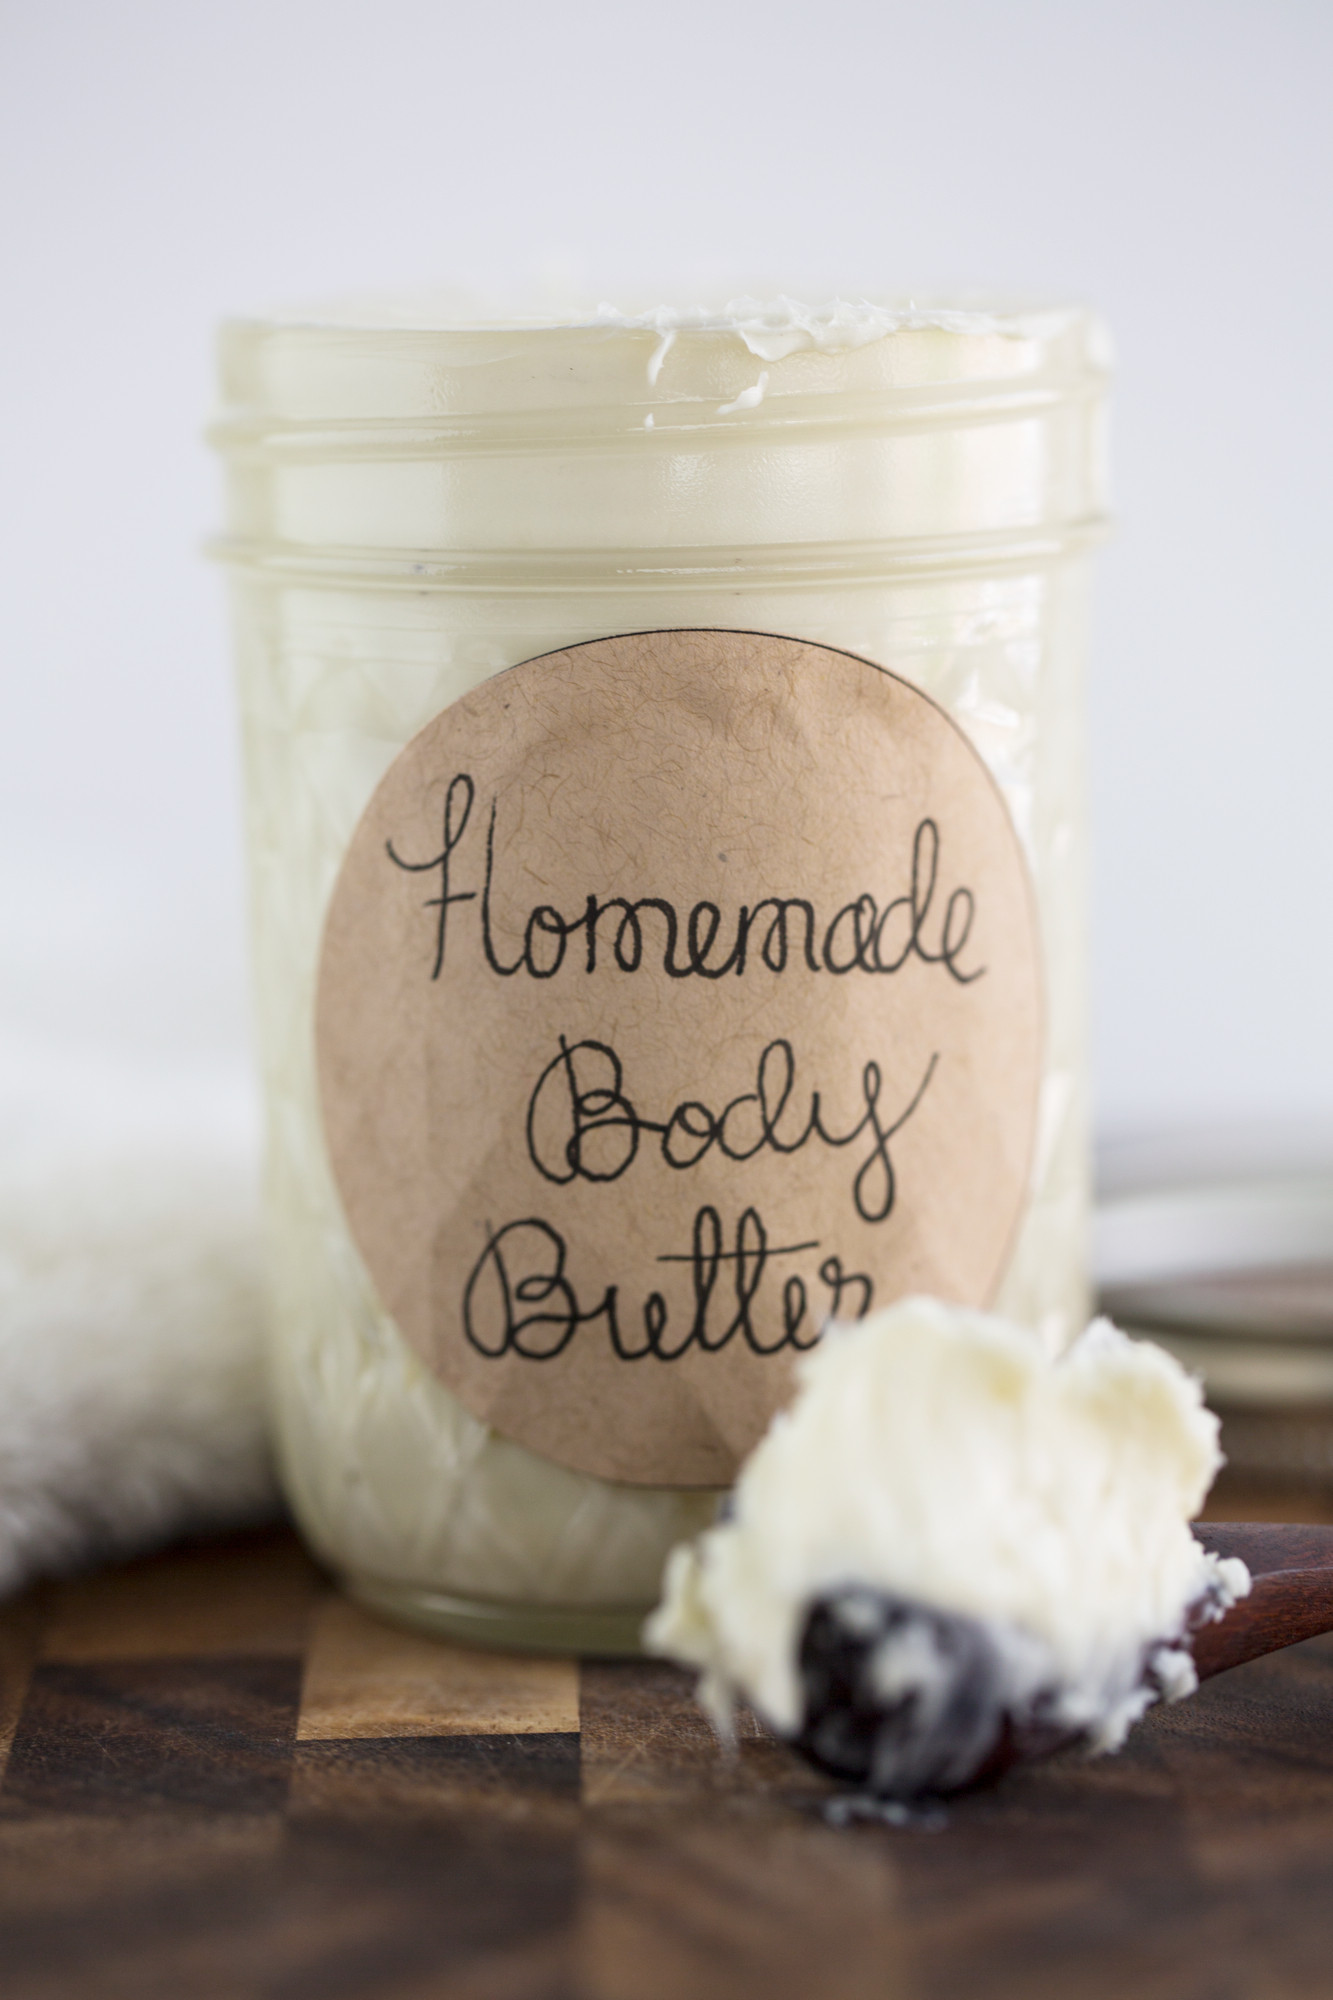 Best ideas about Body Butter DIY . Save or Pin Homemade Beauty 02 Now.